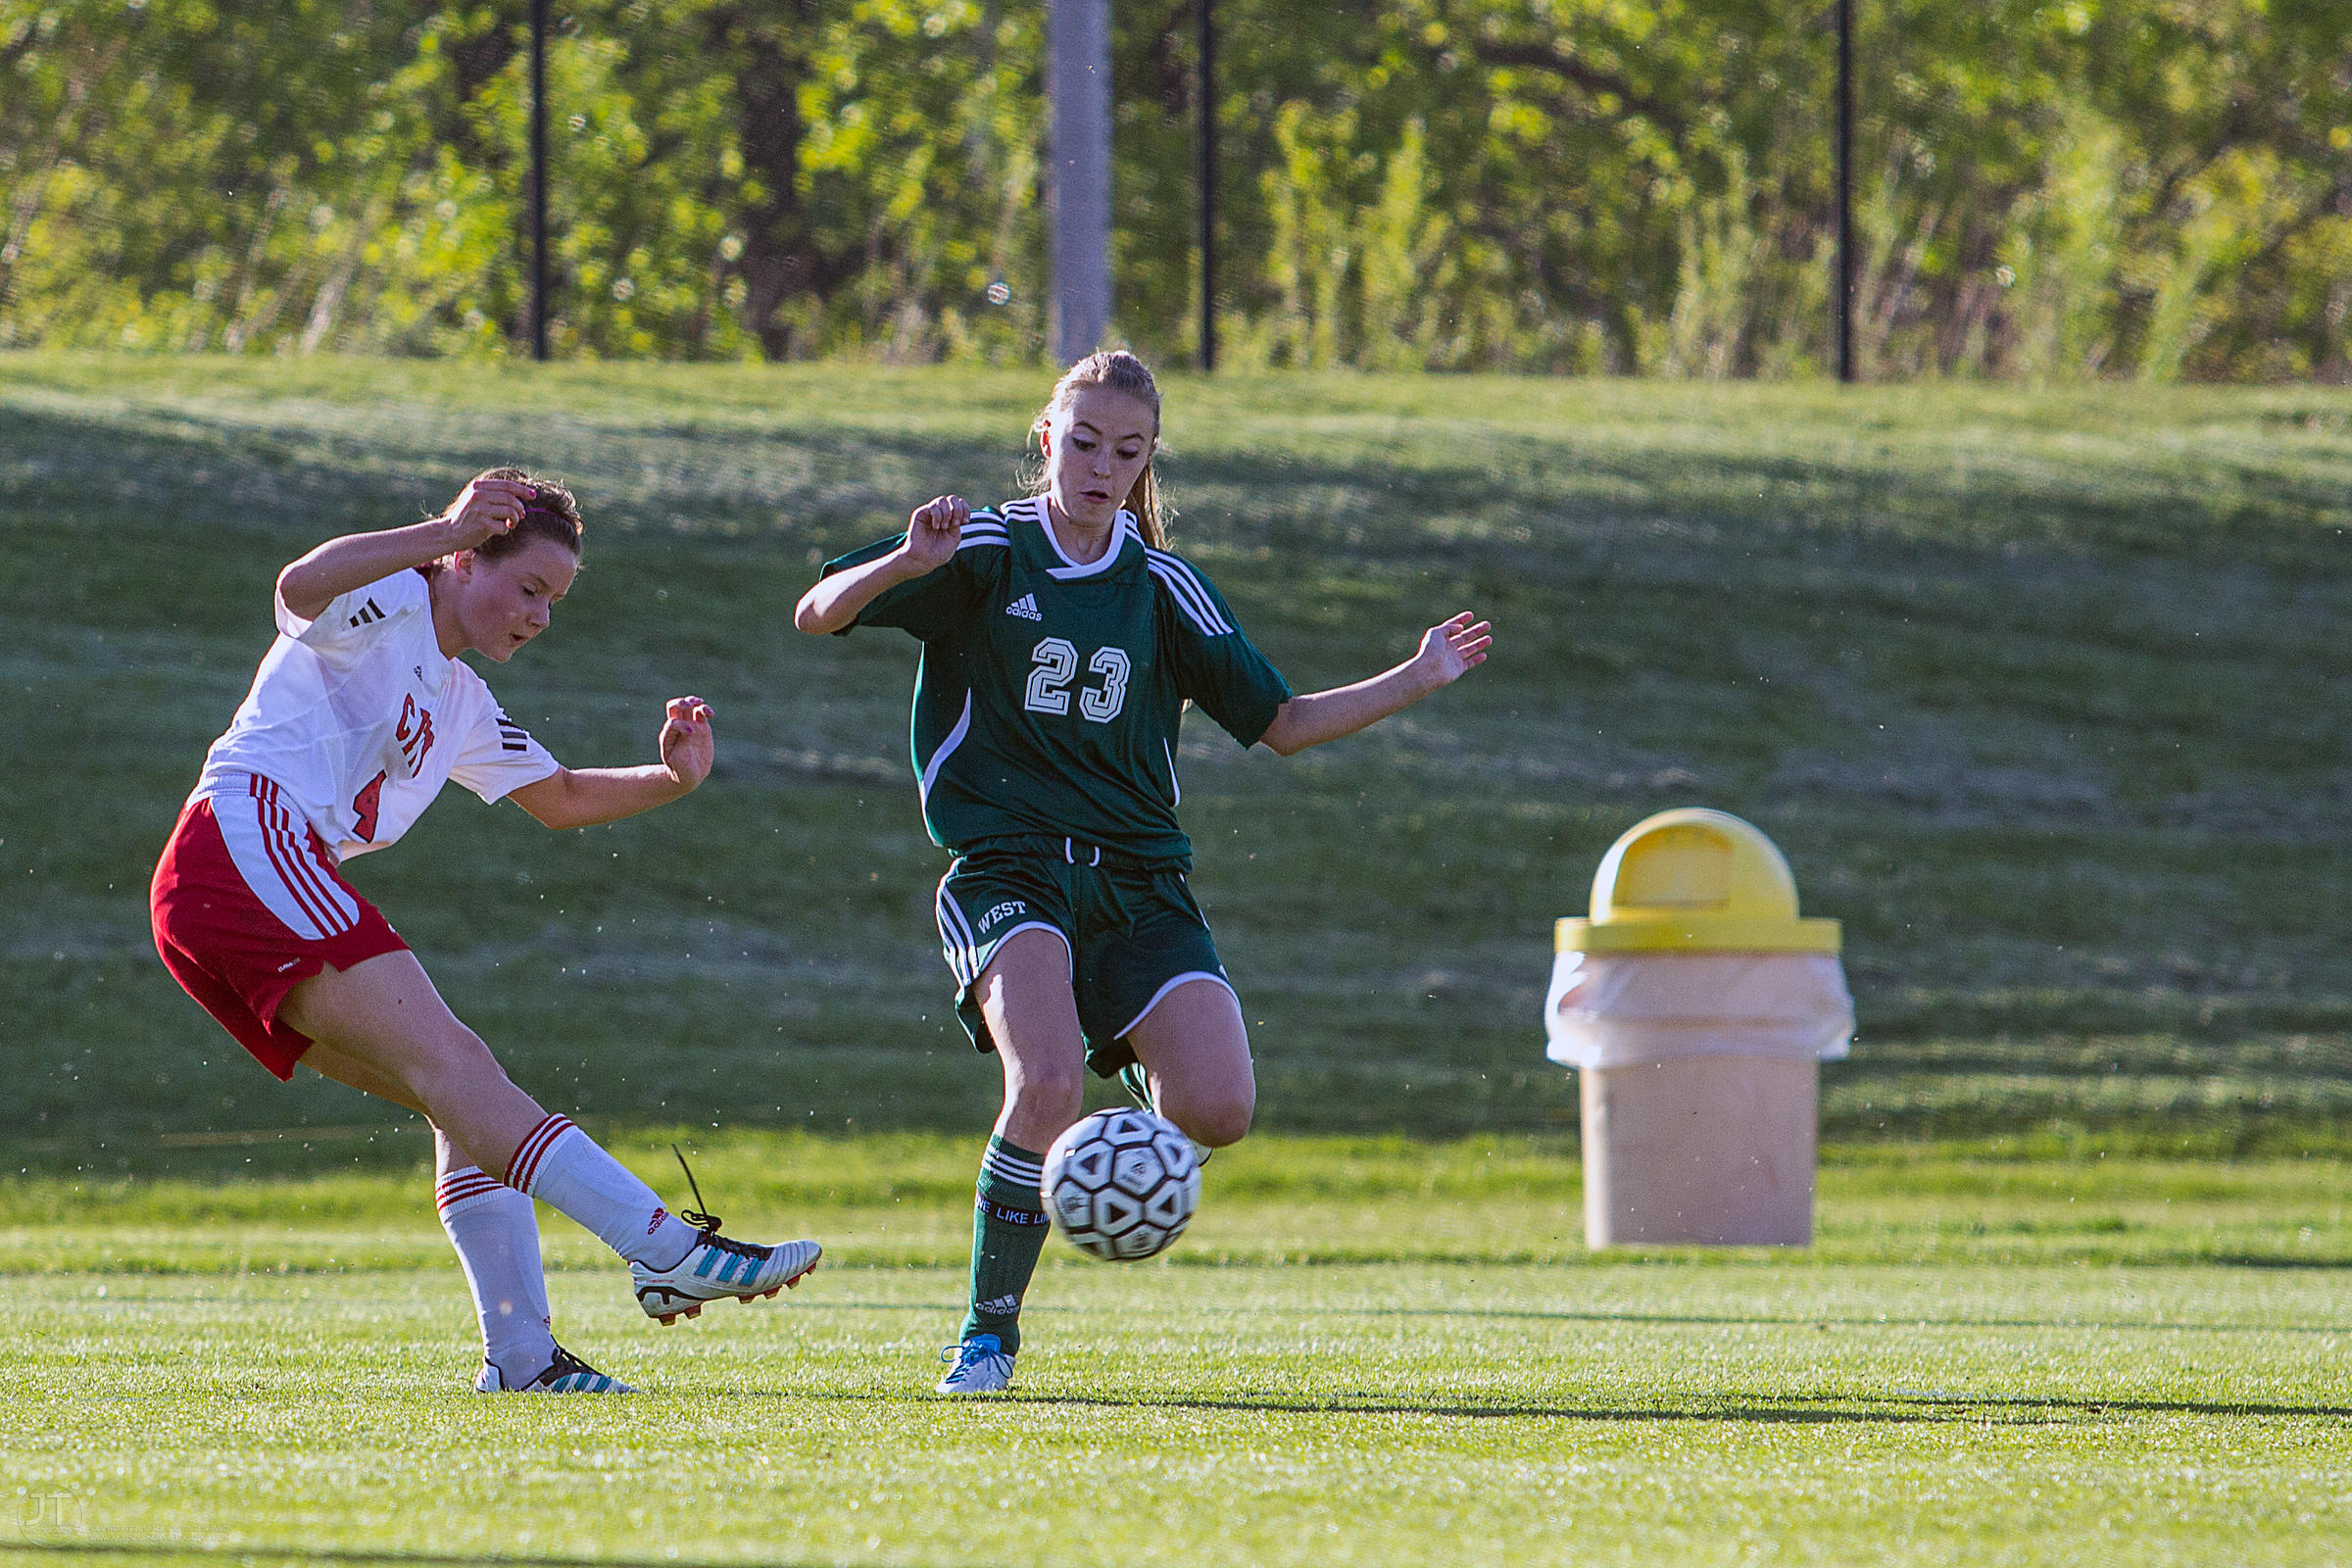 Iowa City West vs Iowa City High Girls Soccer, Iowa Soccer Stadium, April 24th, 2012